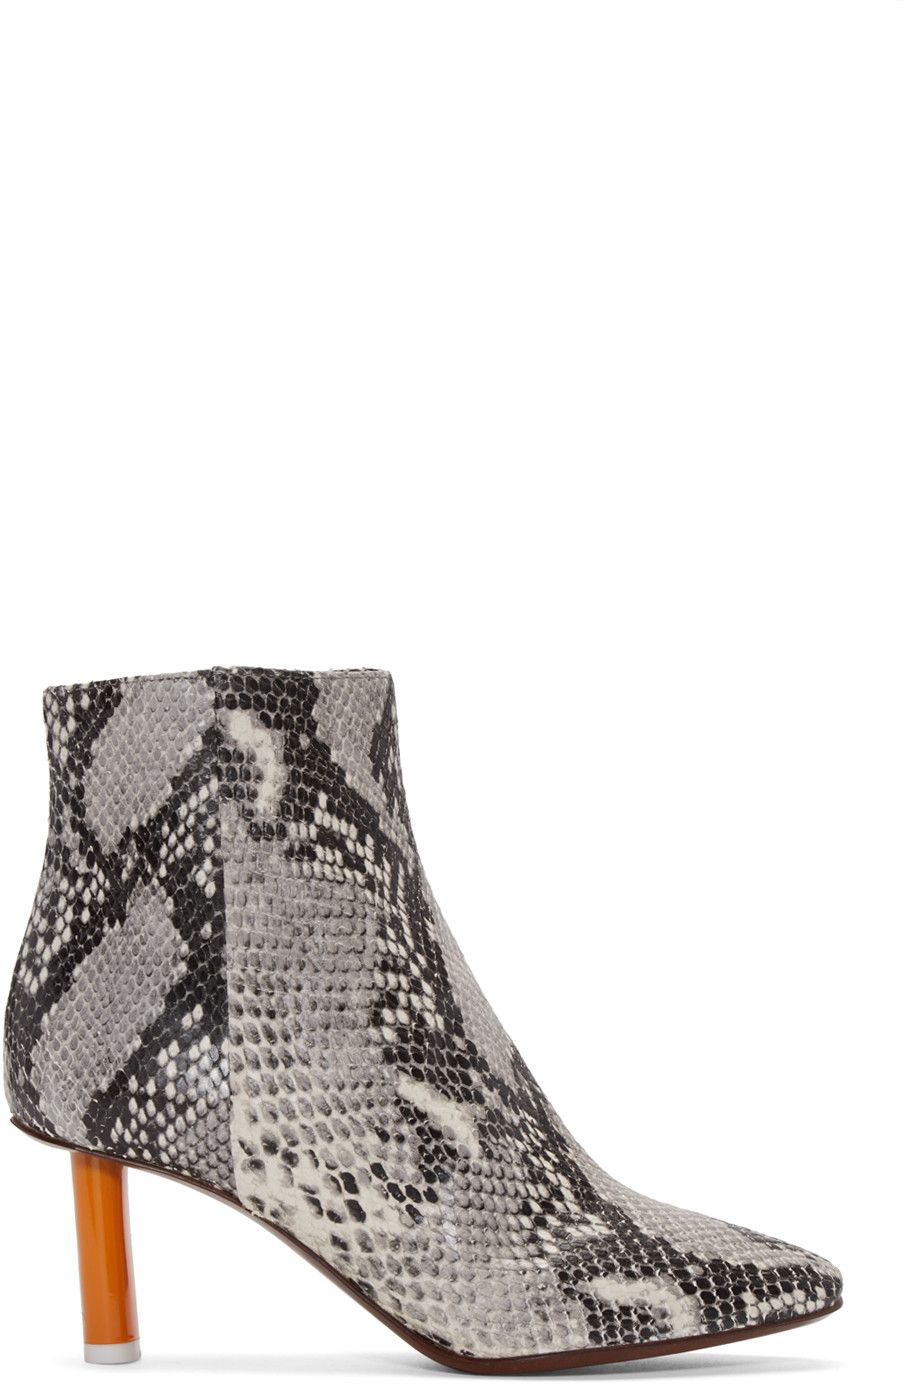 free shipping countdown package from china Vetements Lighter Snakeskin Ankle Boots discount newest YwFXP